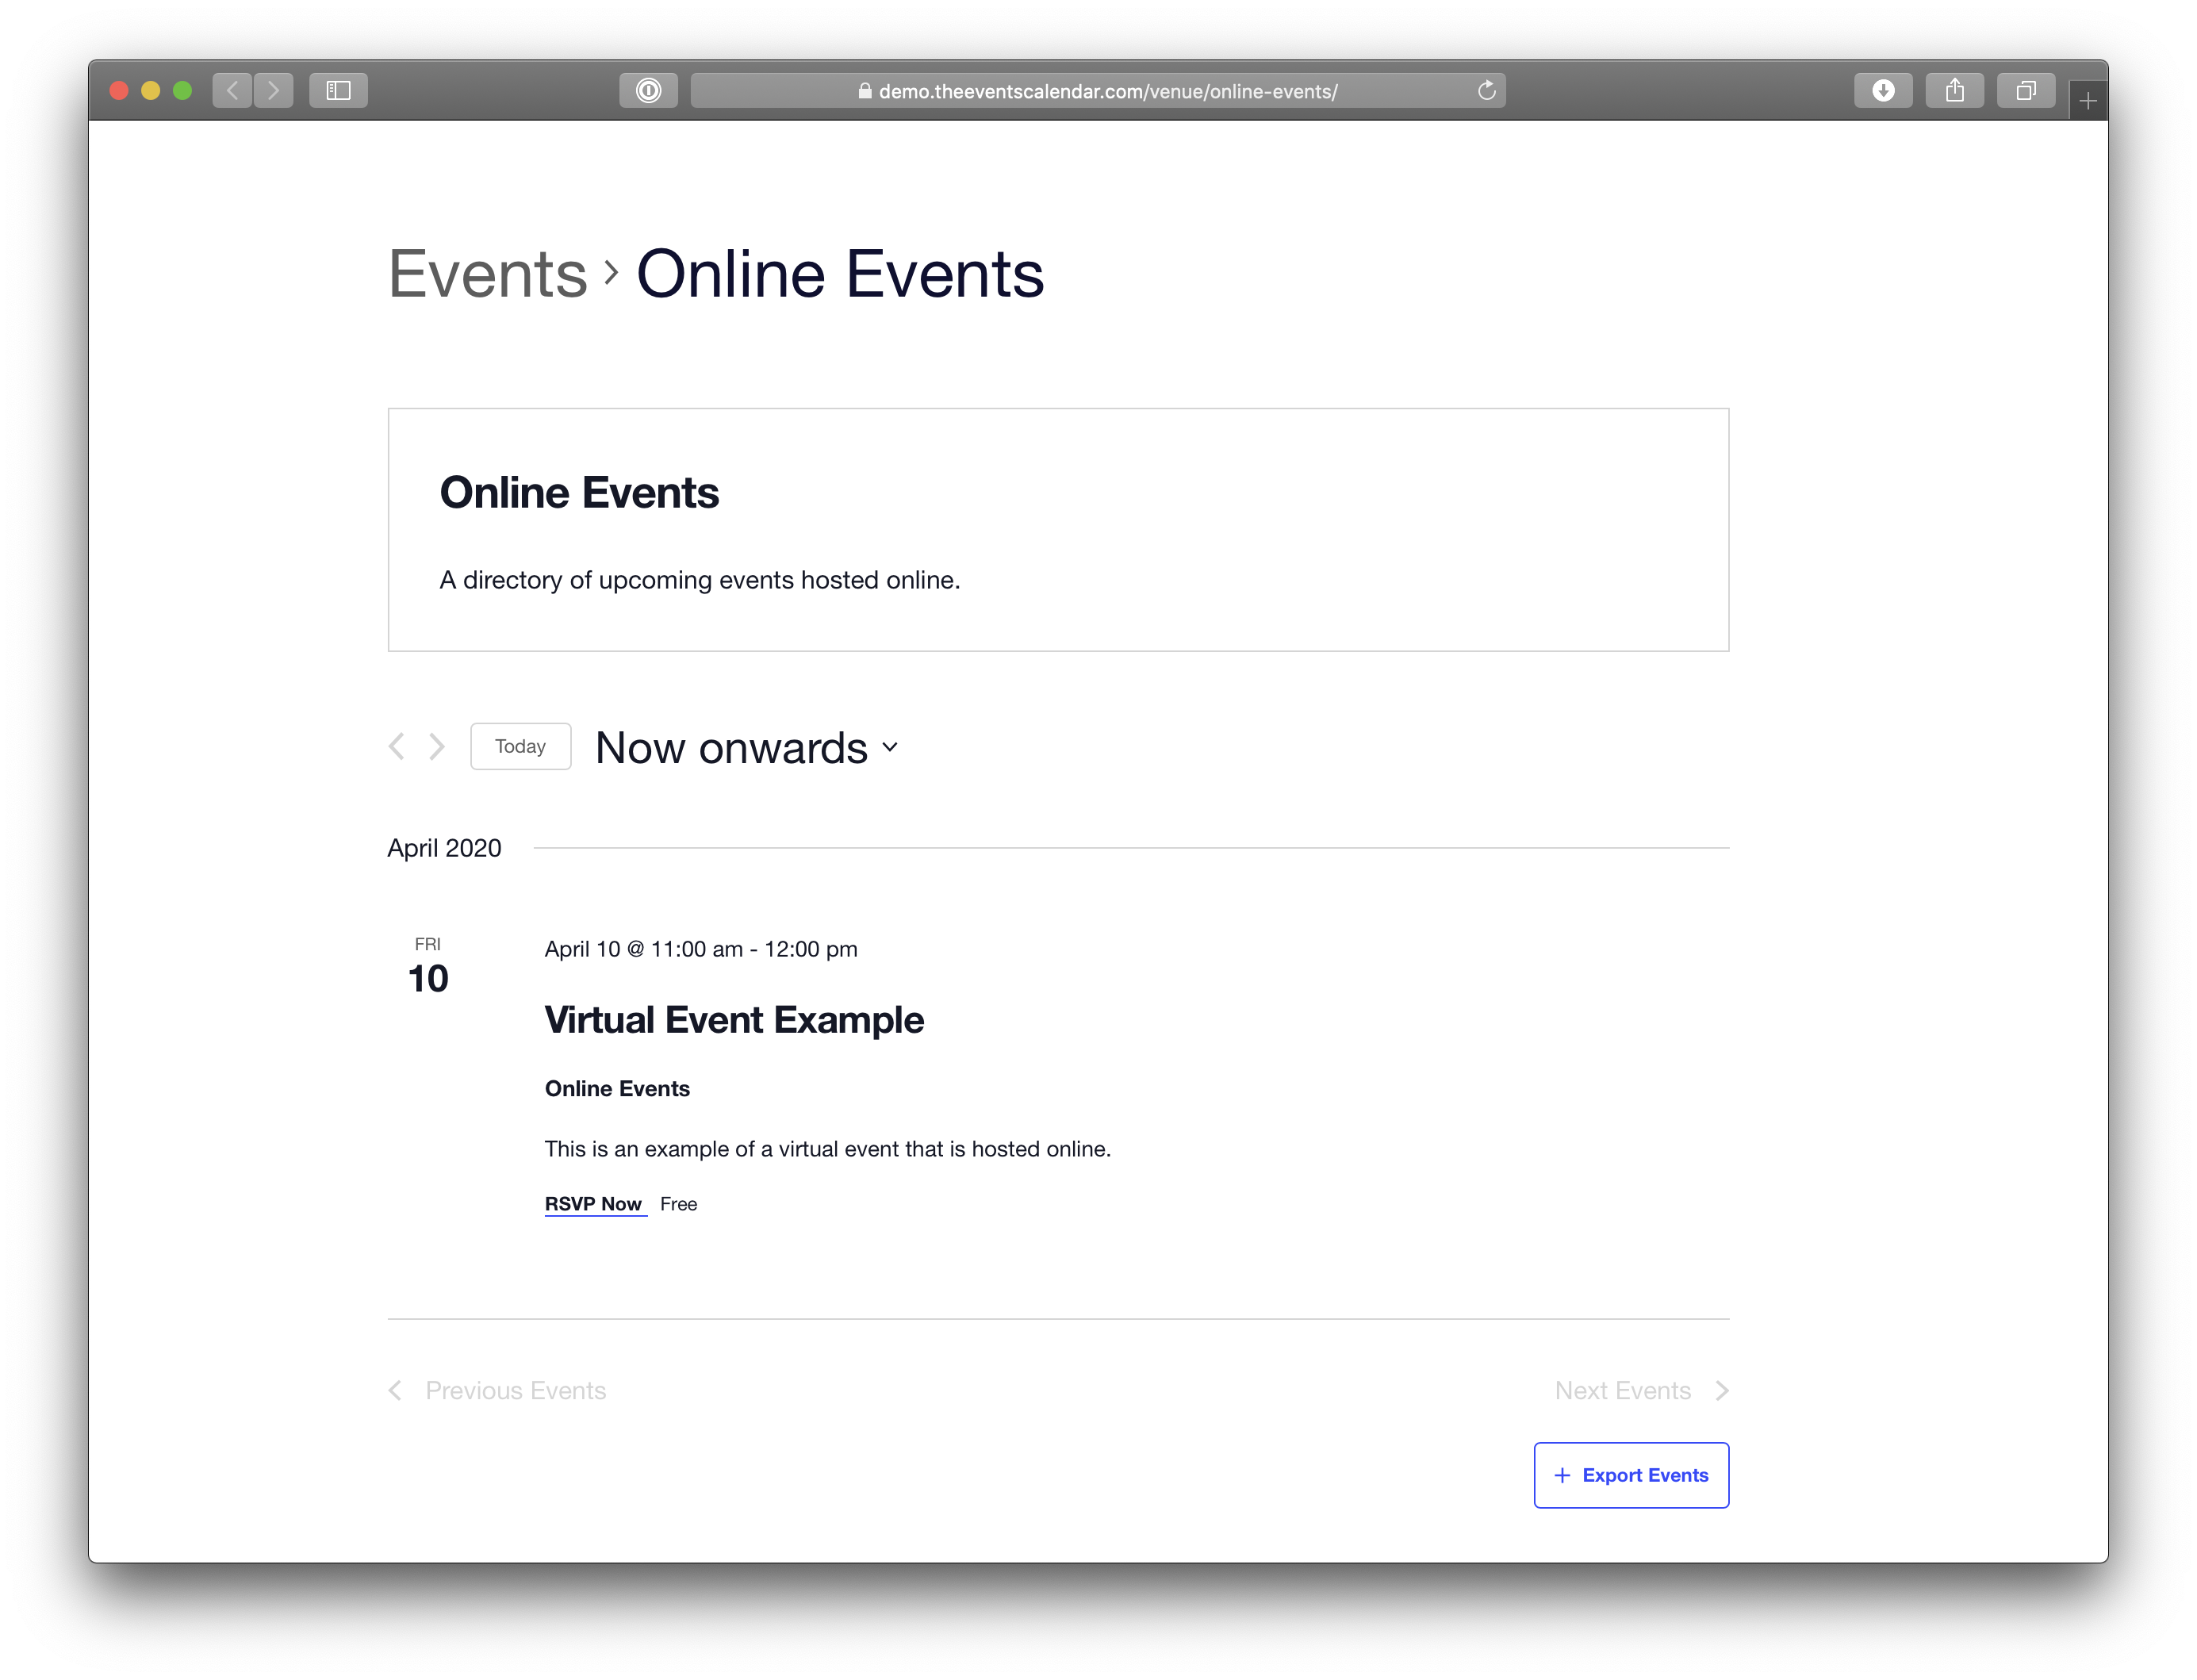 Showing a venue page with online event listings.